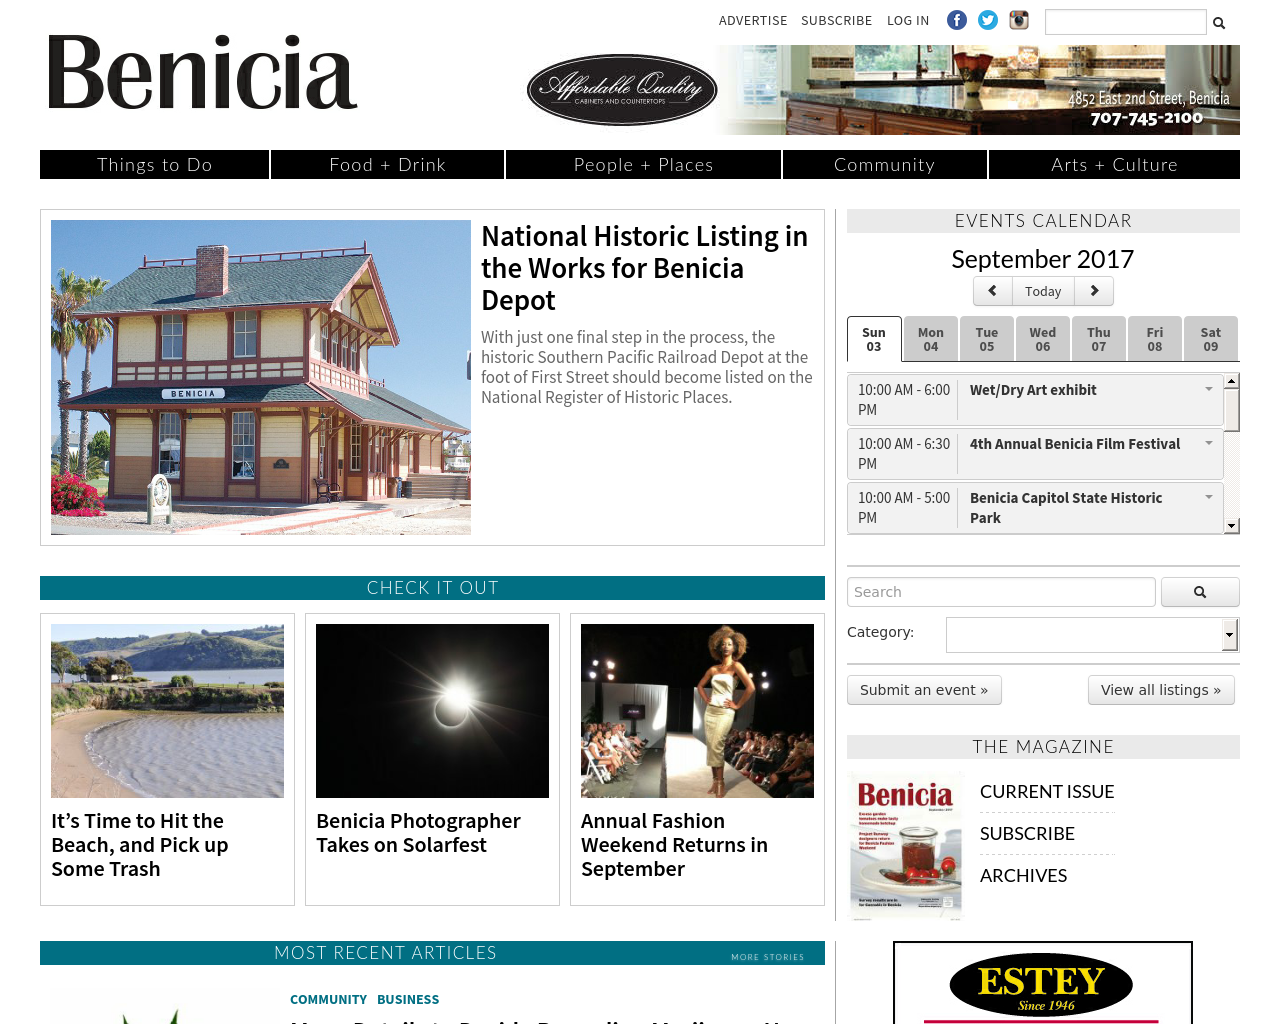 Benicia-Magazine-Advertising-Reviews-Pricing